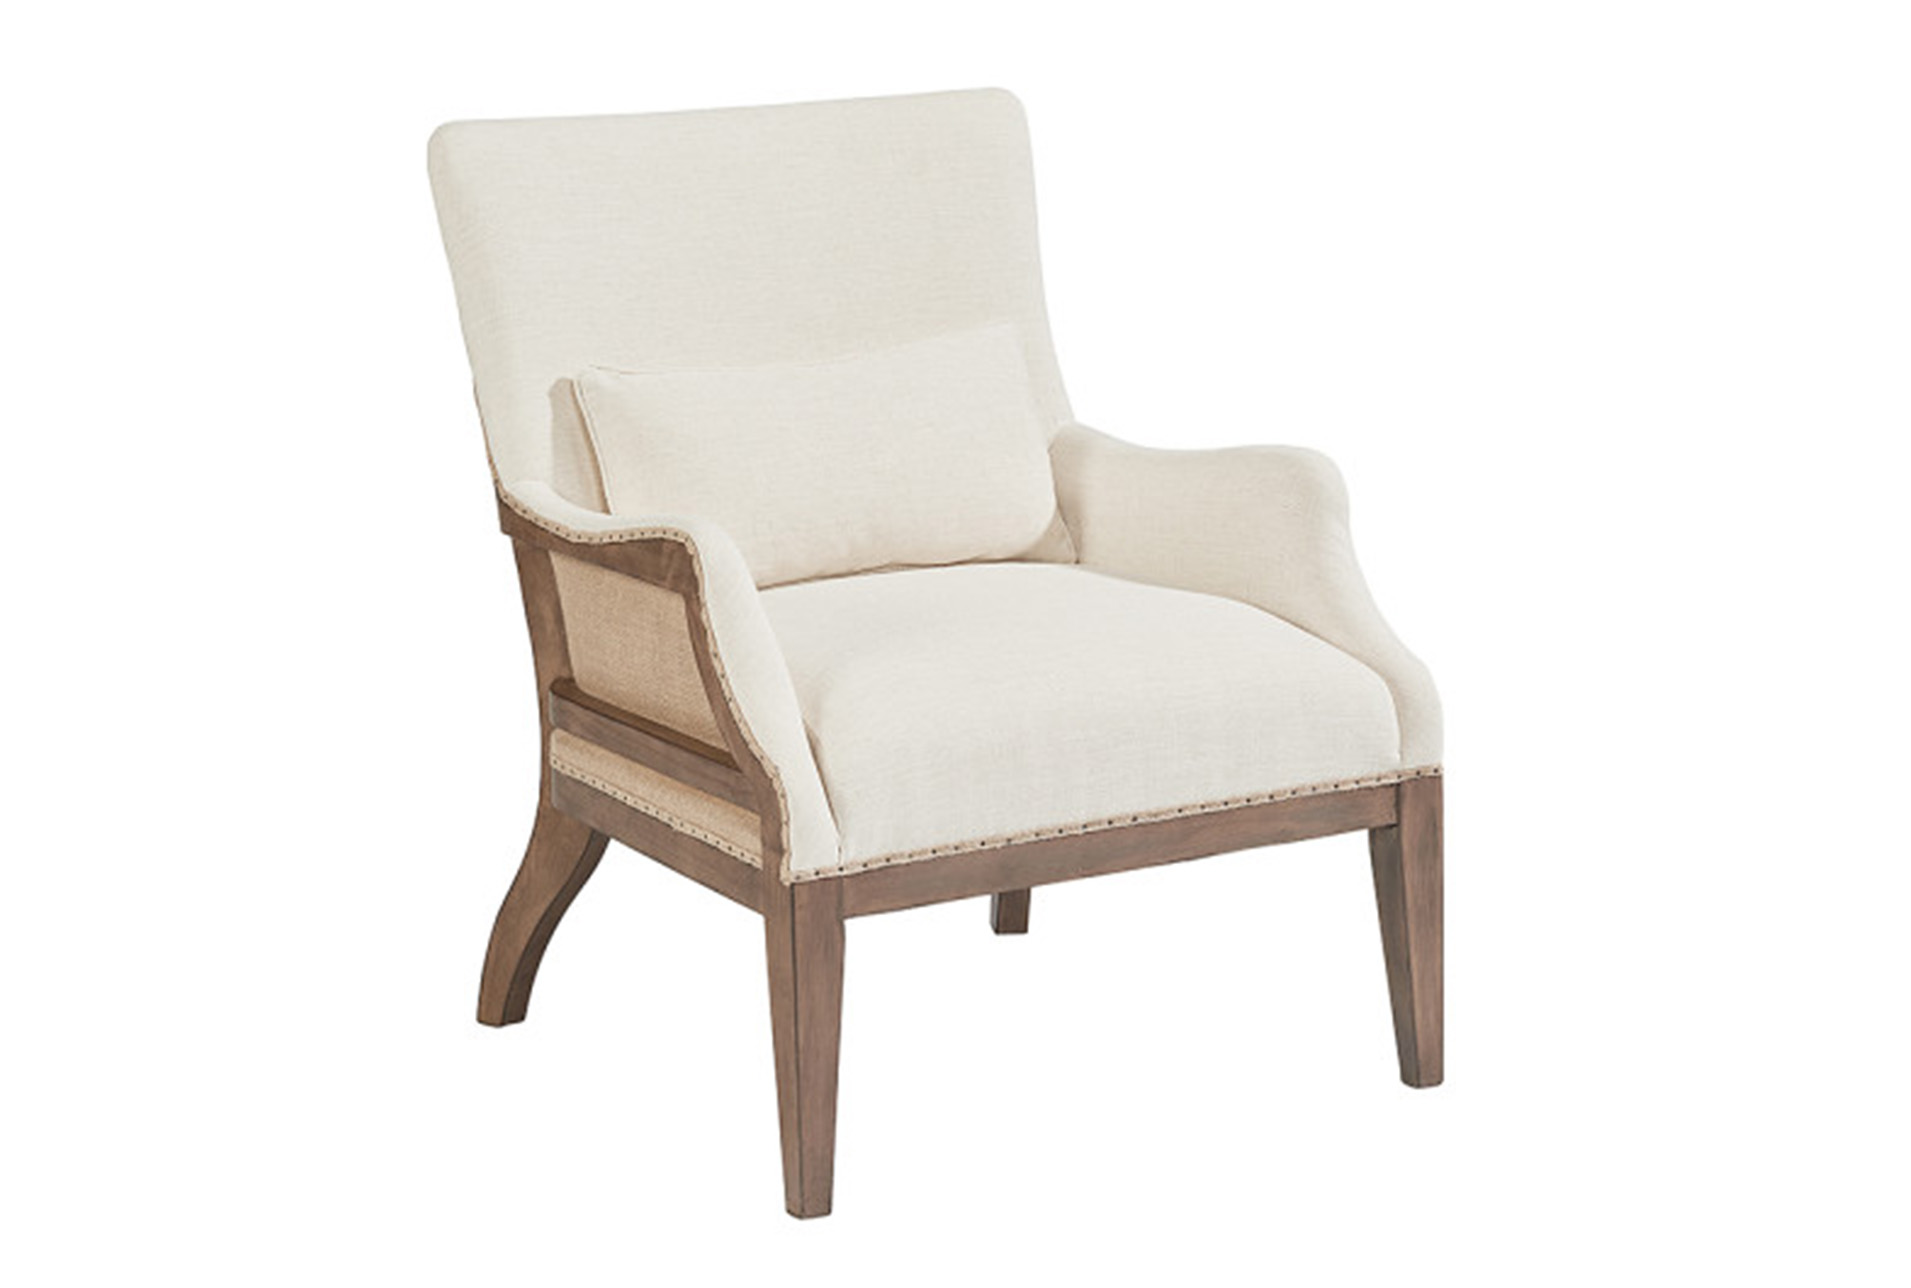 Magnolia Home Renew Ivory Accent Chair By Joanna Gaines (Qty: 1) Has Been  Successfully Added To Your Cart.